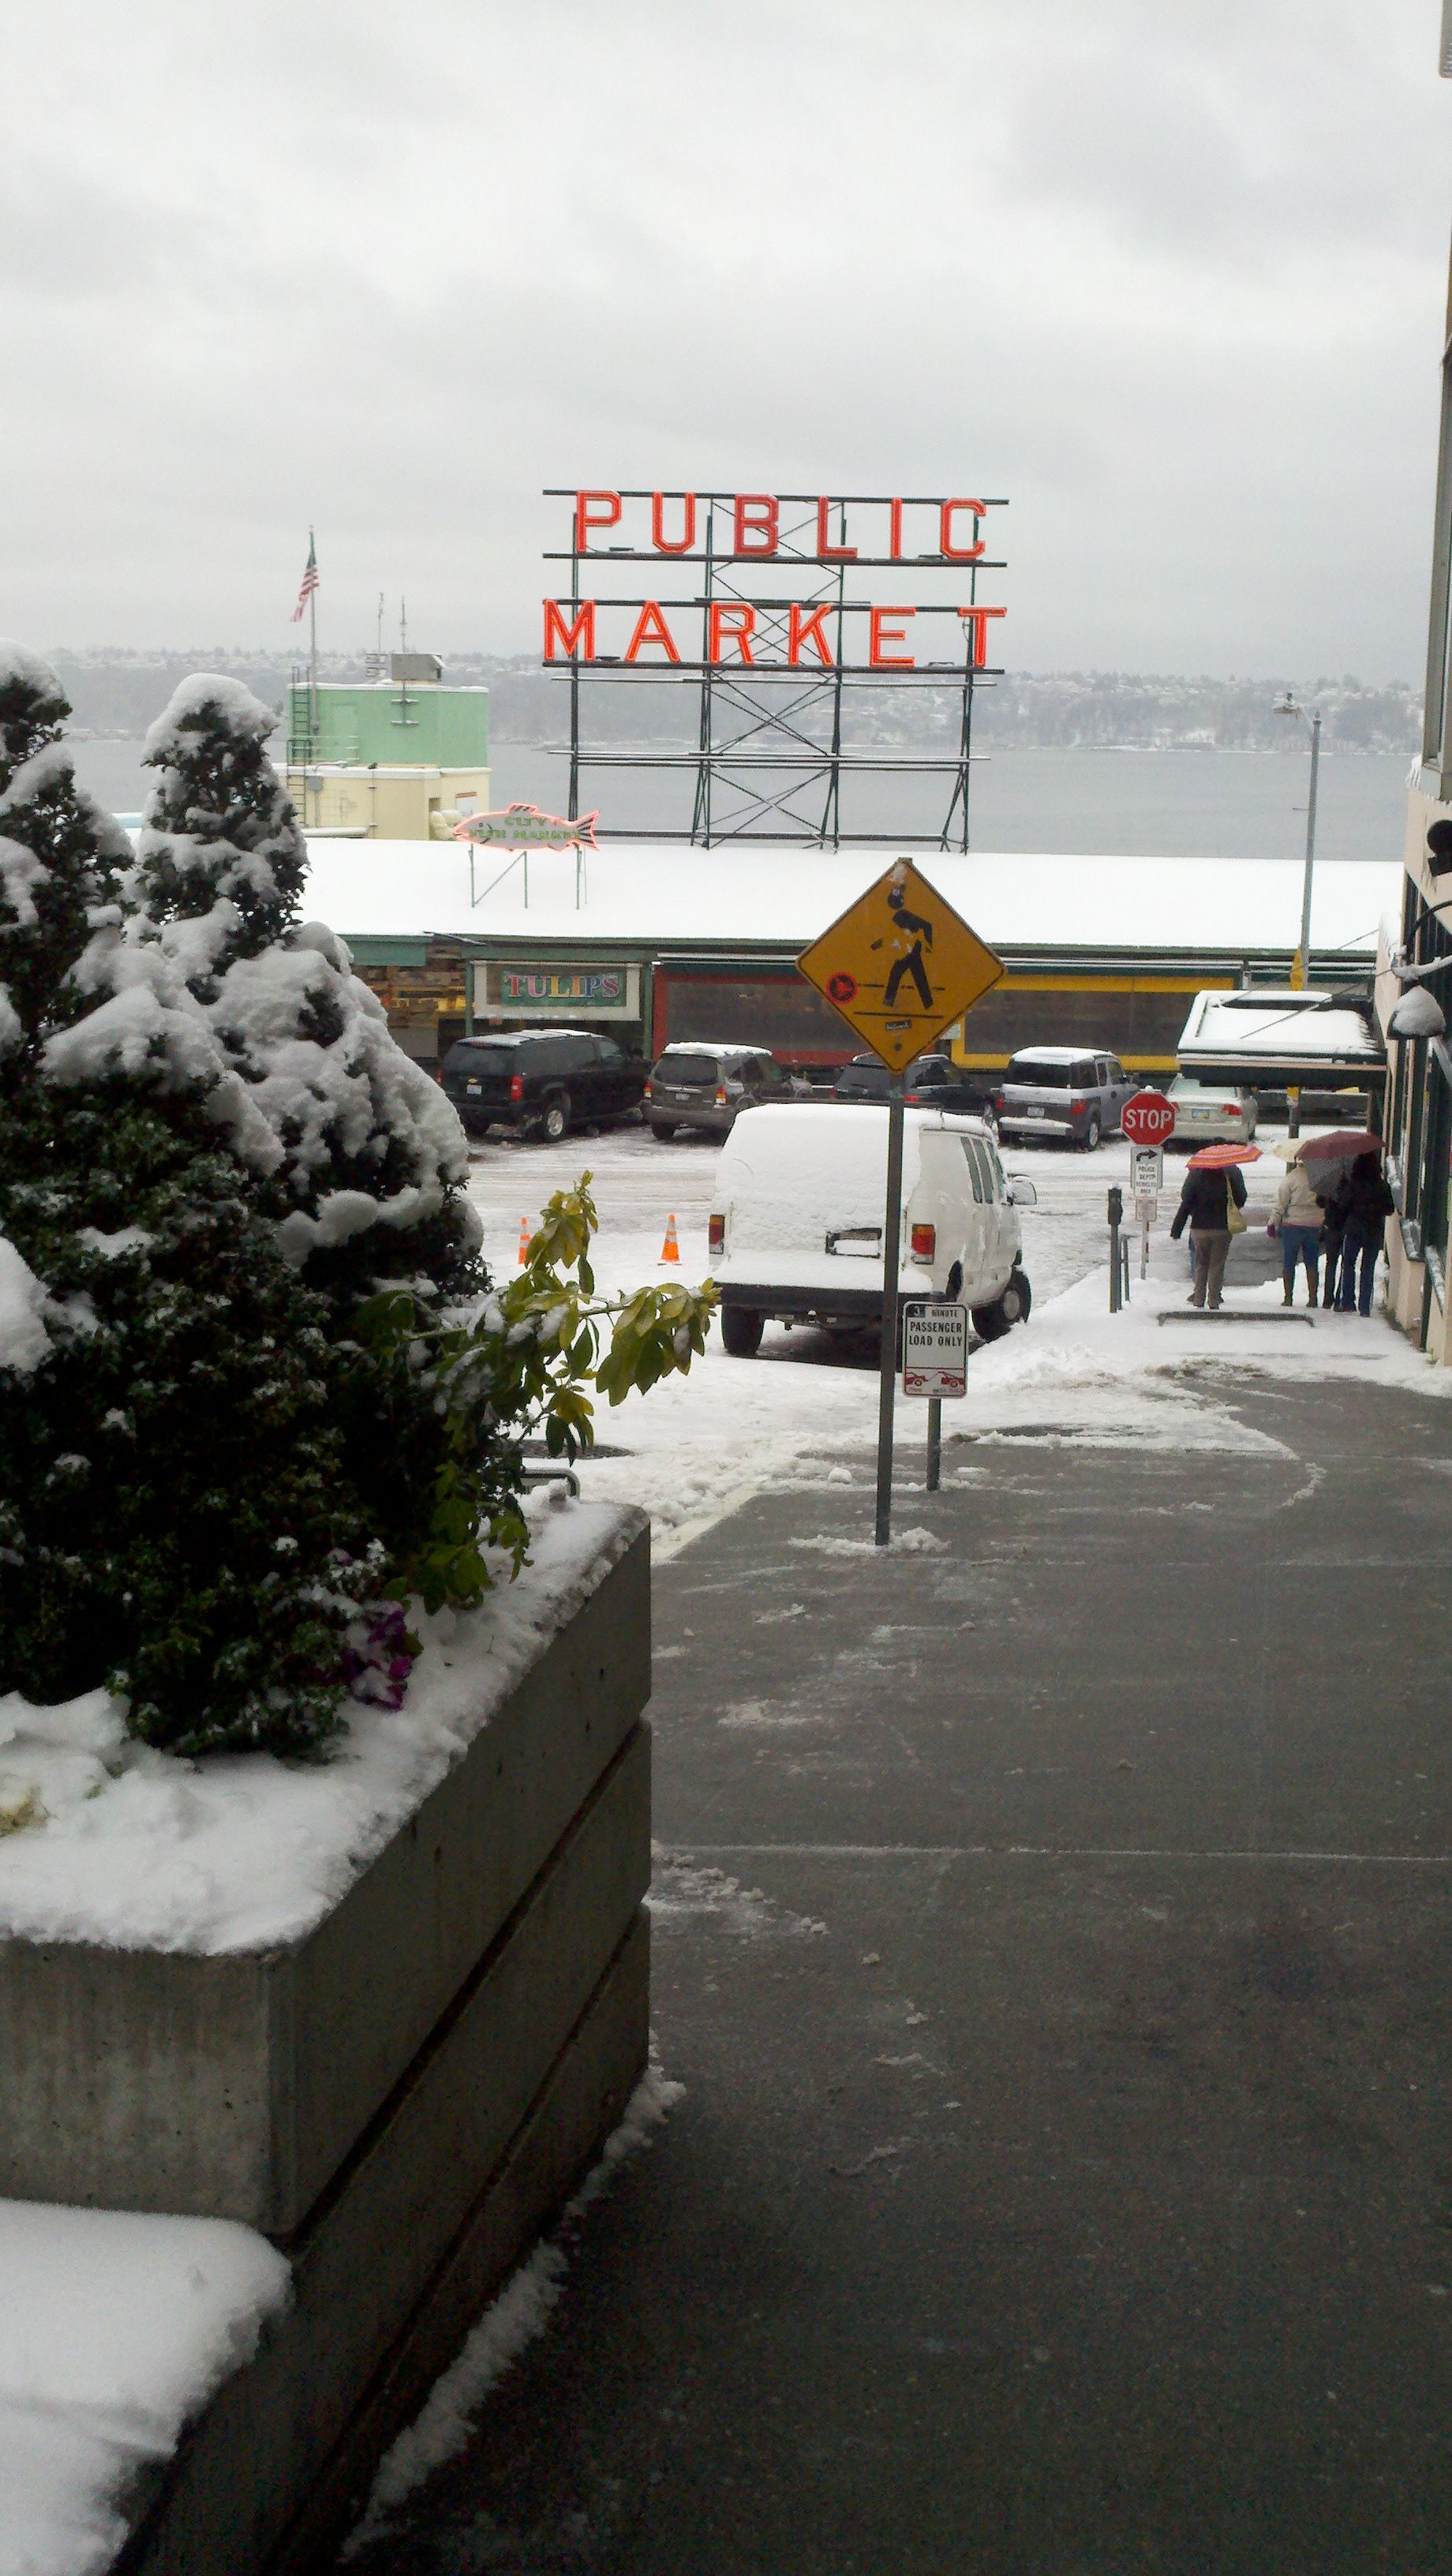 Pike Place Market Seattle WA Have been